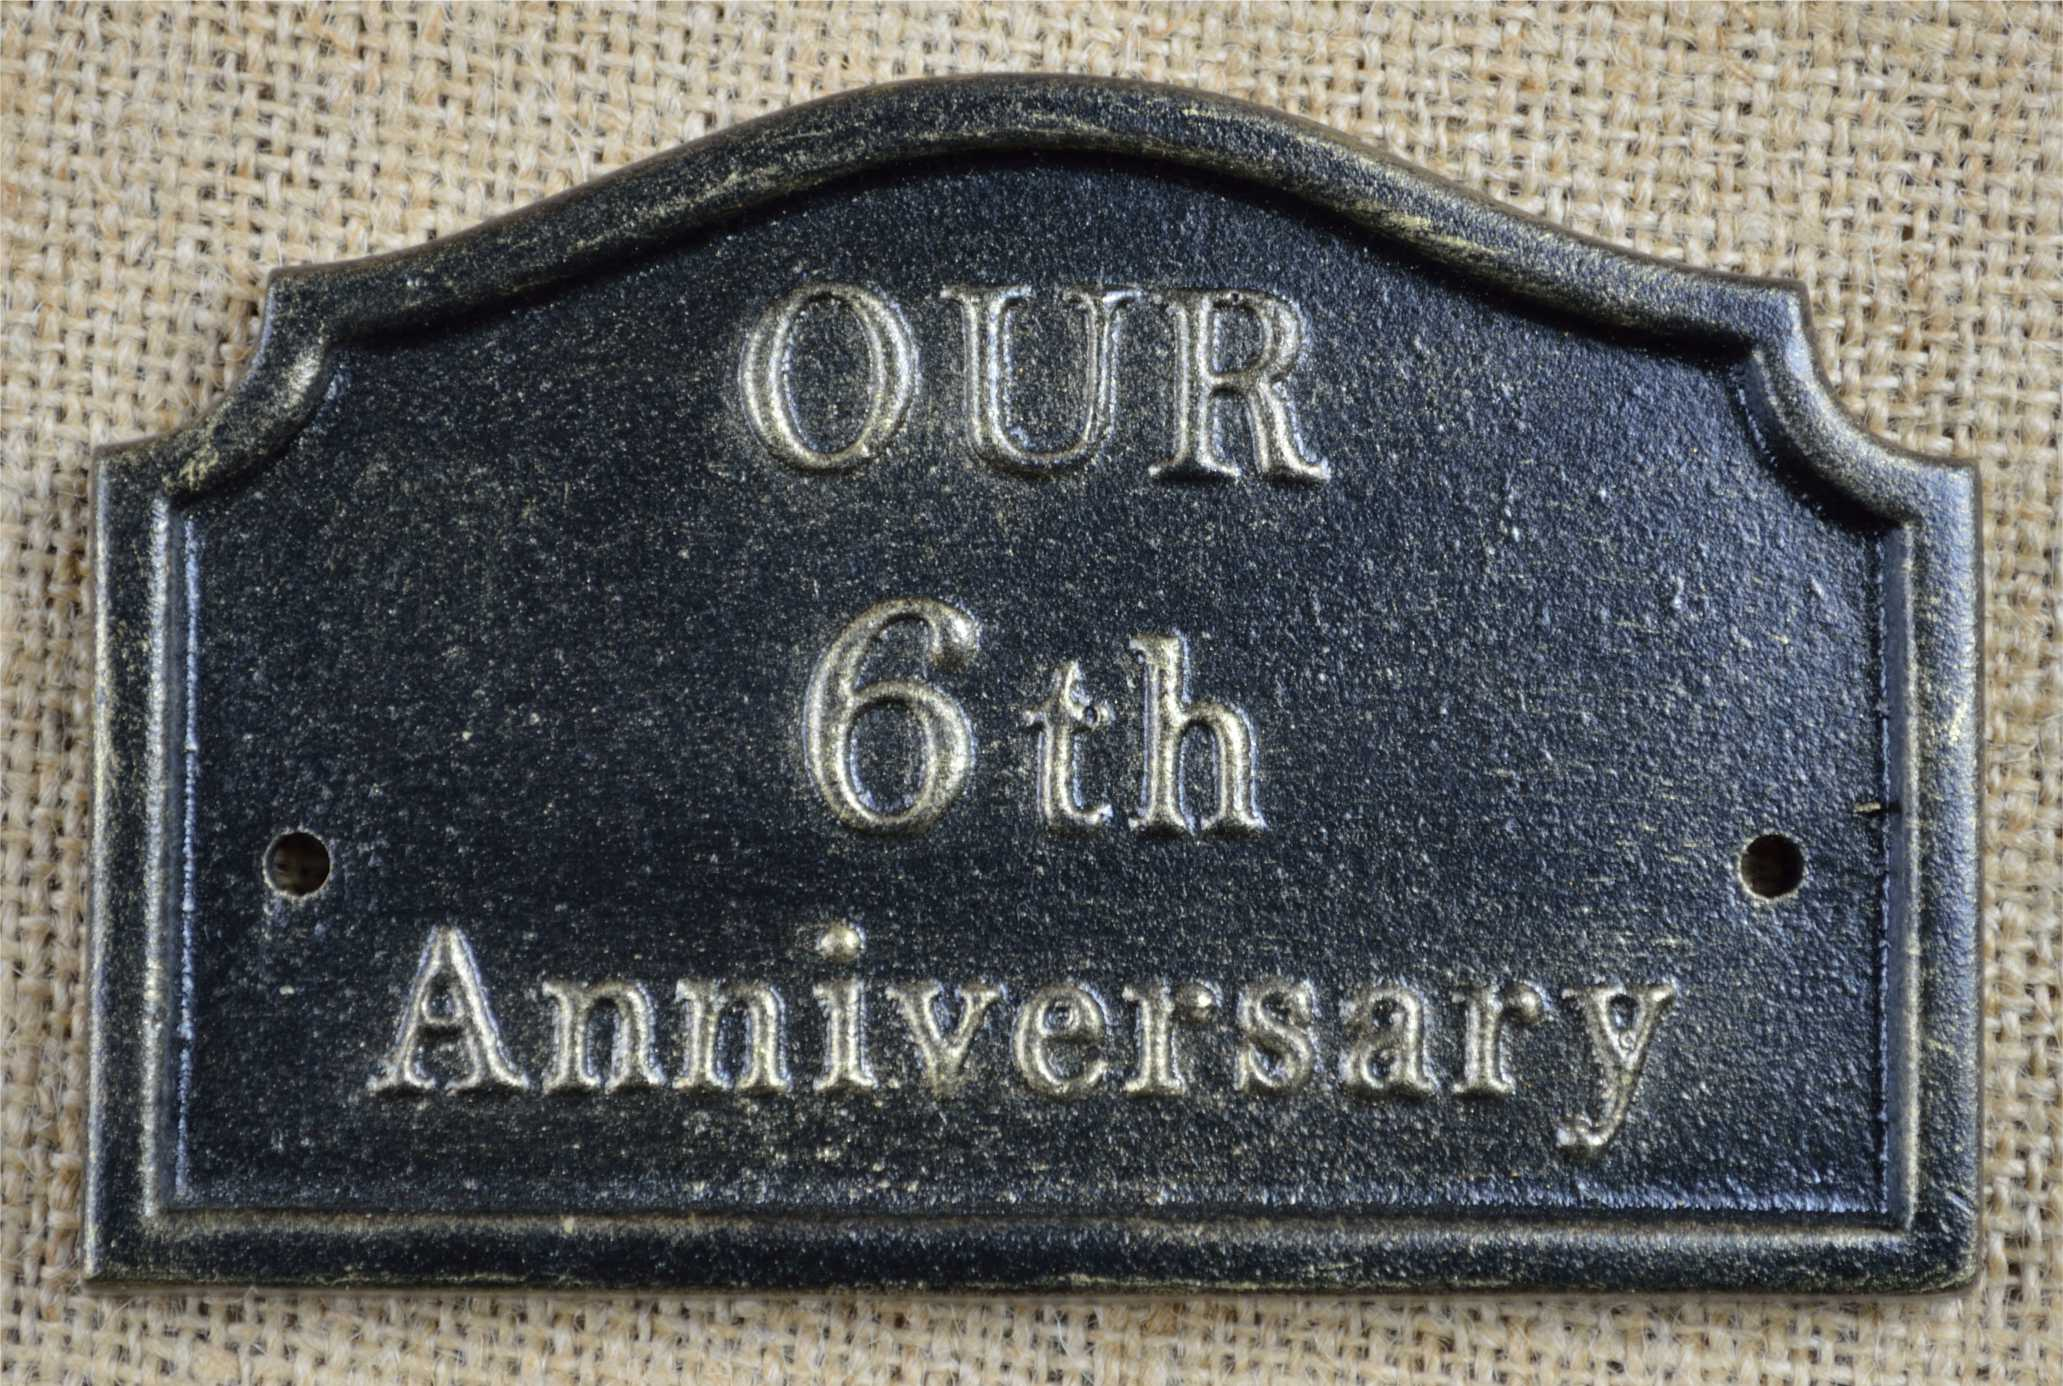 Six Year Wedding Anniversary Gift Ideas: 6th Wedding Anniversary Plaque, Solid Cast Iron Gifts By